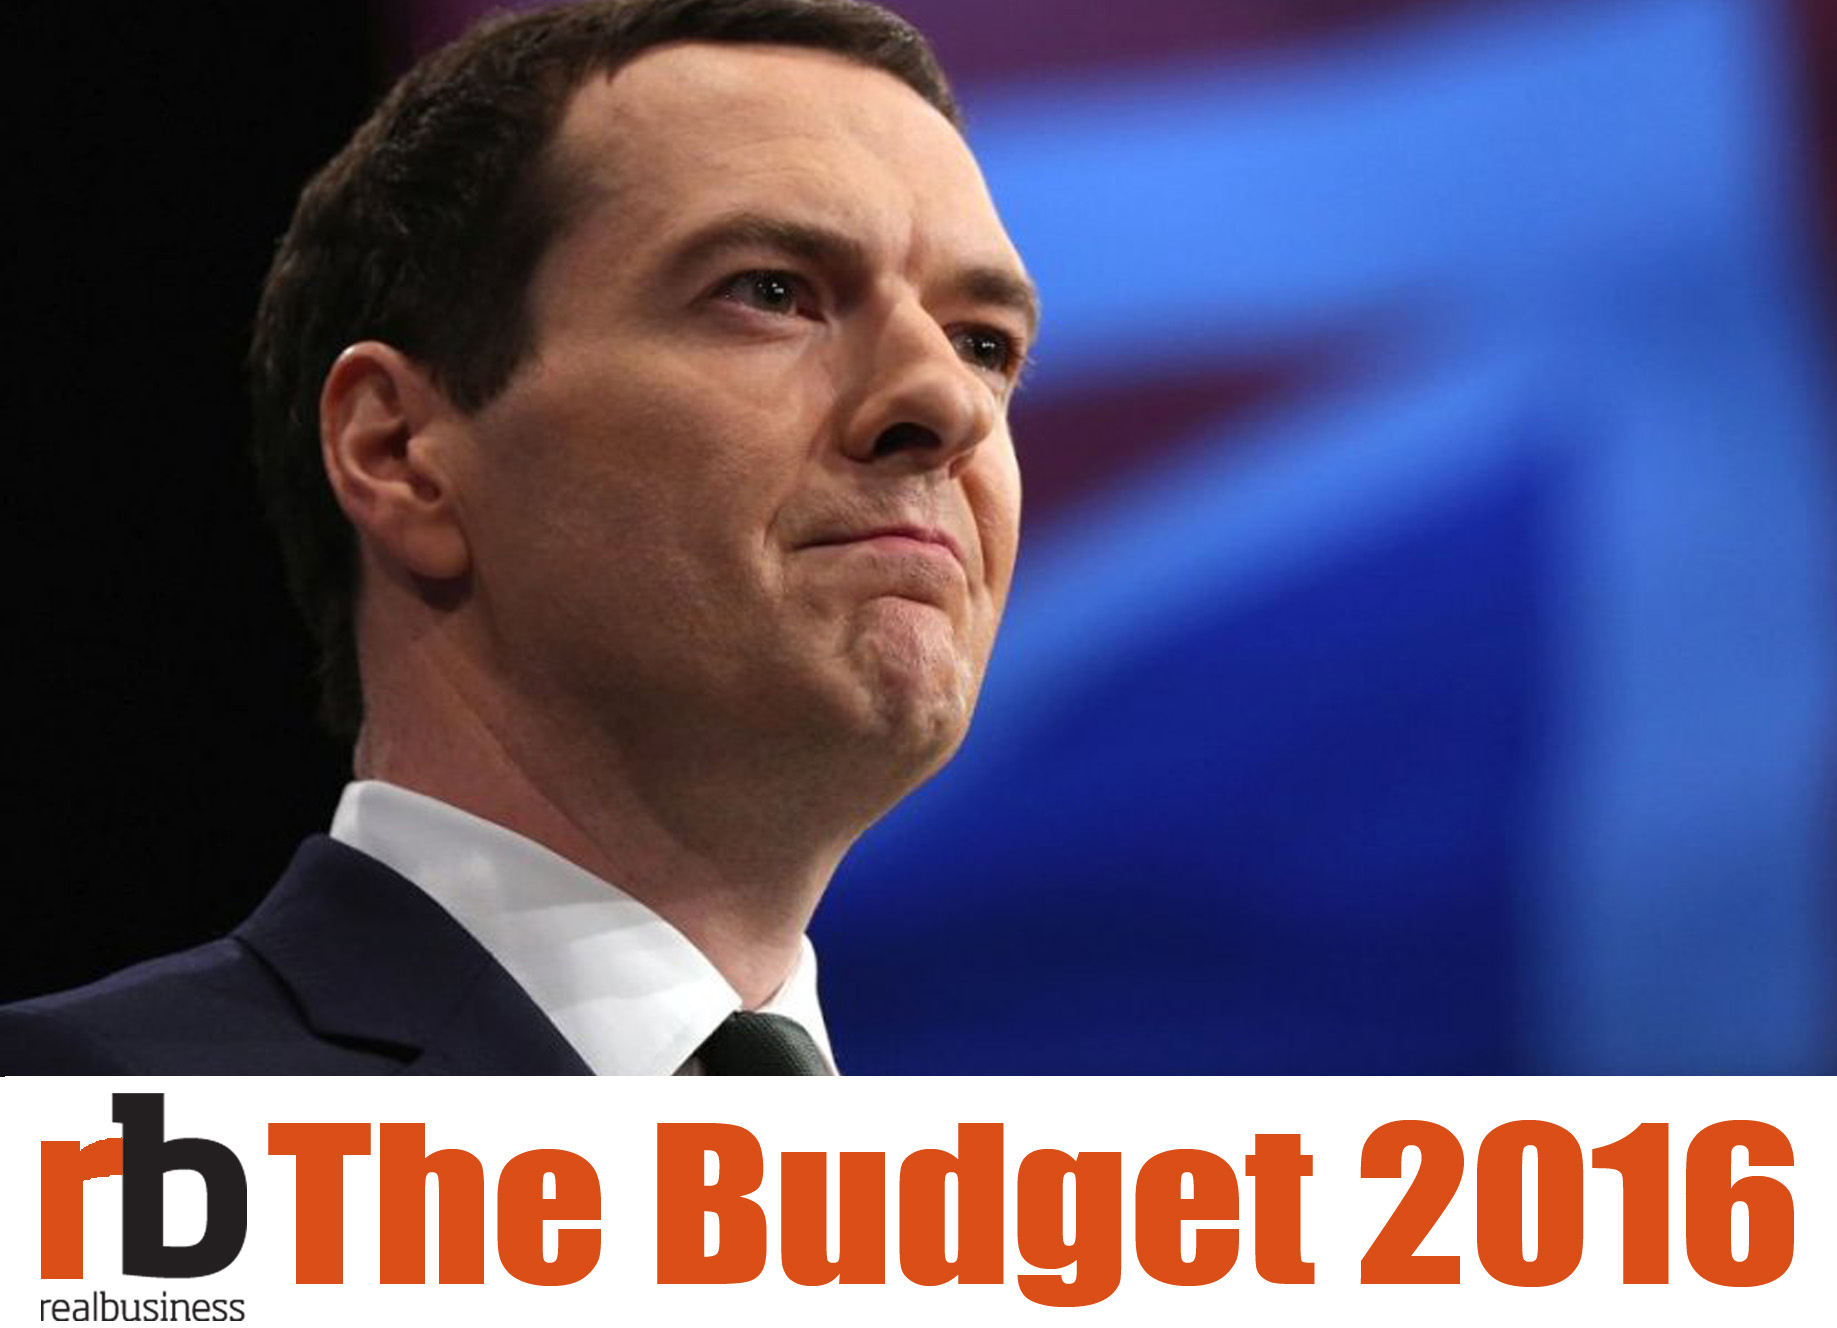 The Budget 2016: Chancellor takes more high earners out of top tax bracket